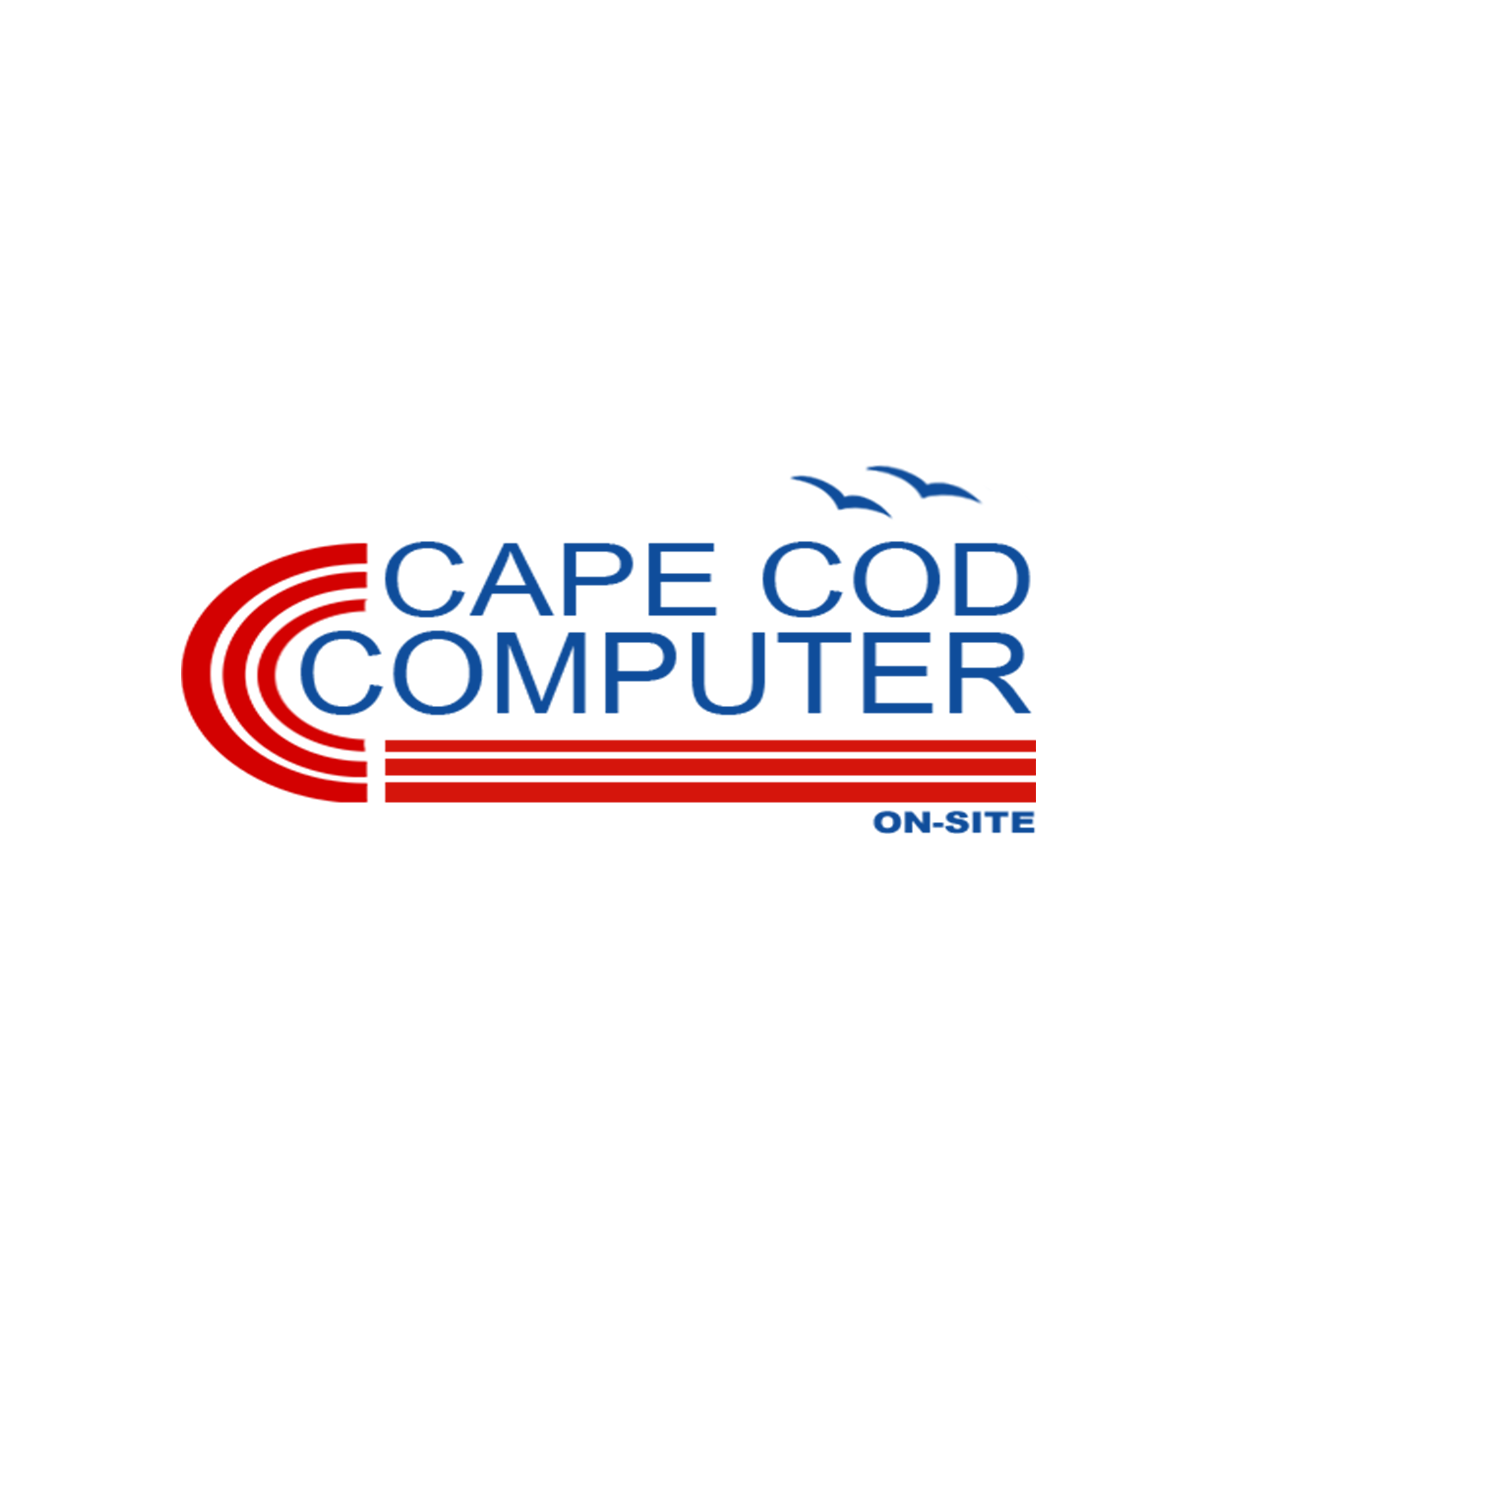 Cape Cod Computer Onsite